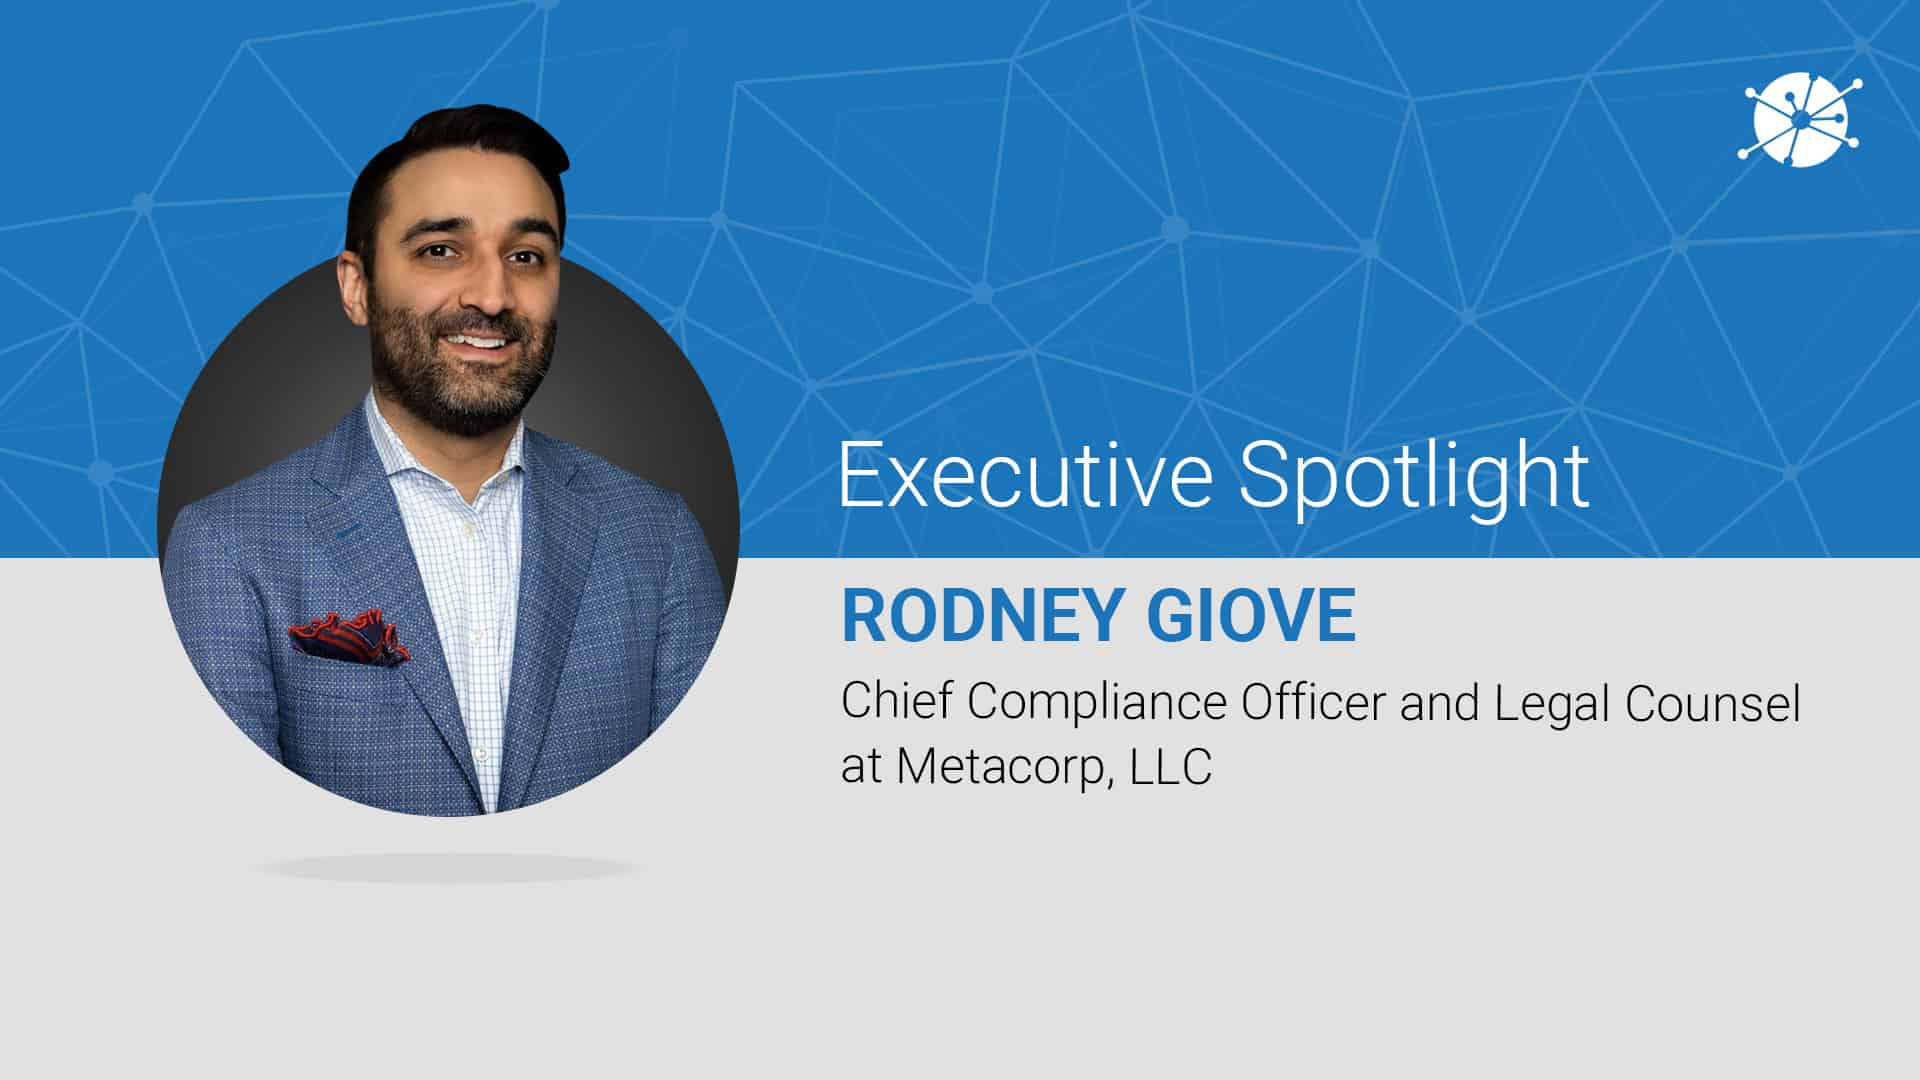 Executive spotlight profile of rodney giove